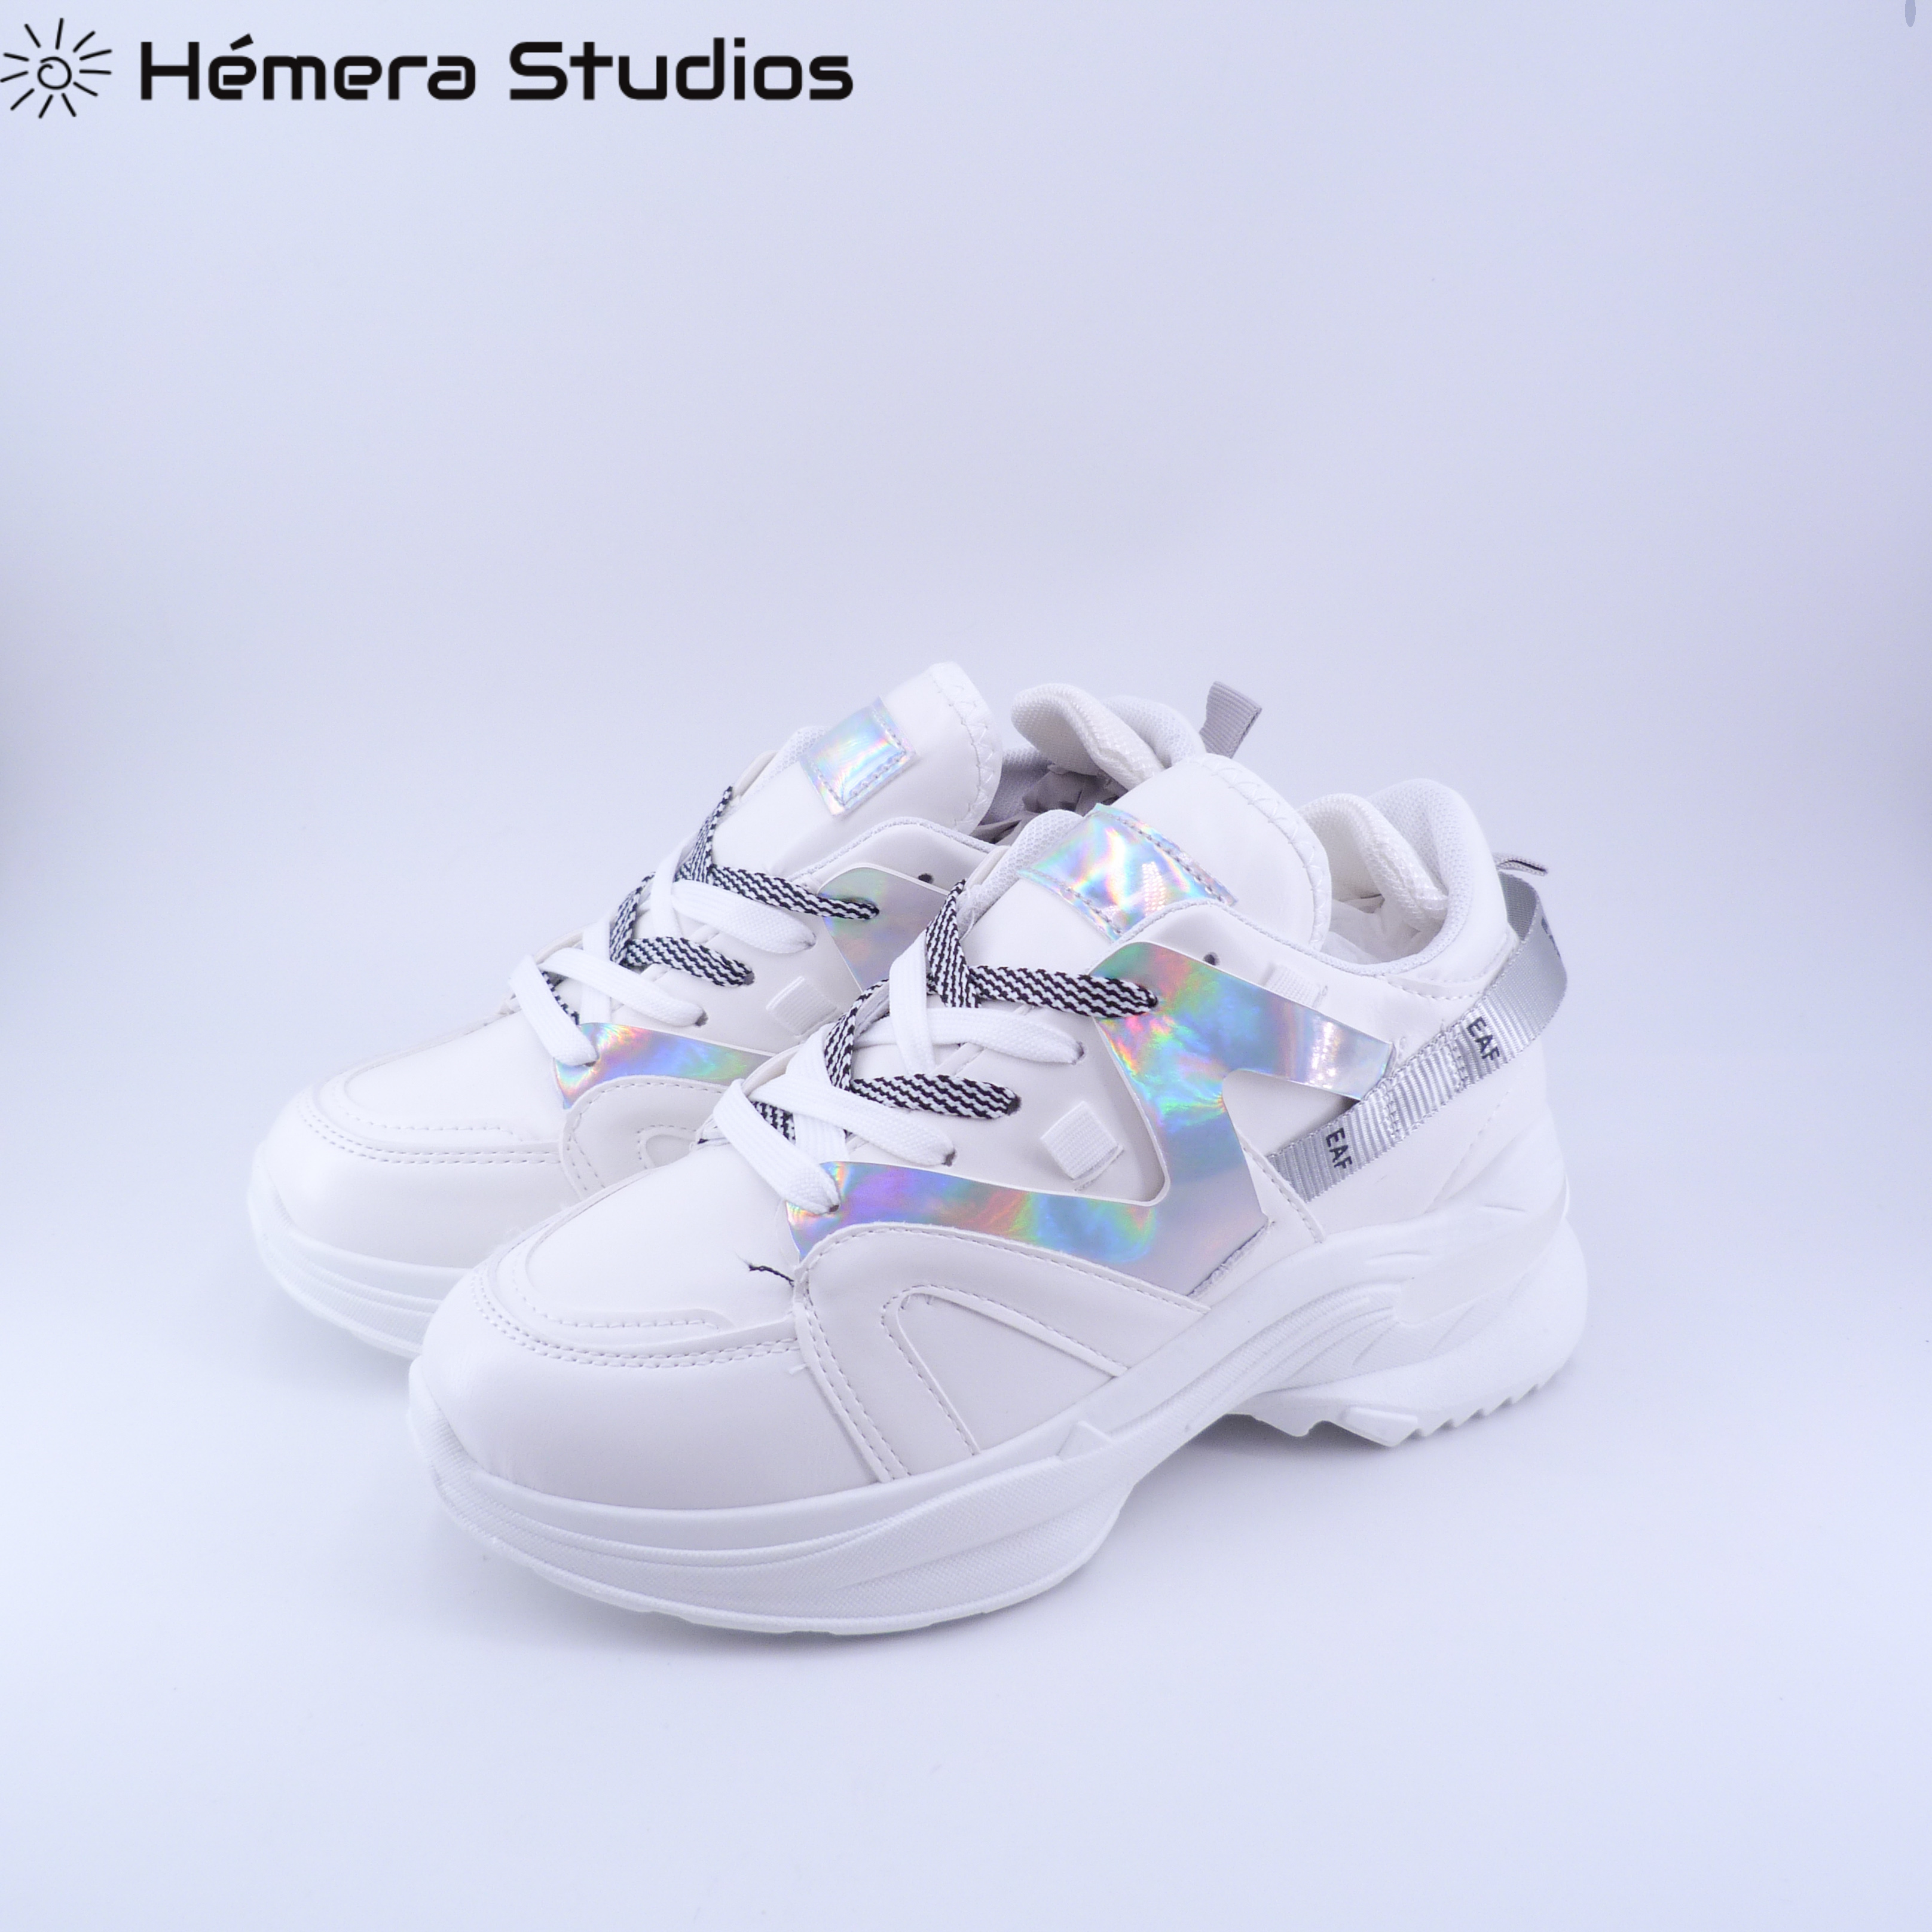 Women's Shoes Sports Casual Woman With Cords Platform Shoes Woman 2019